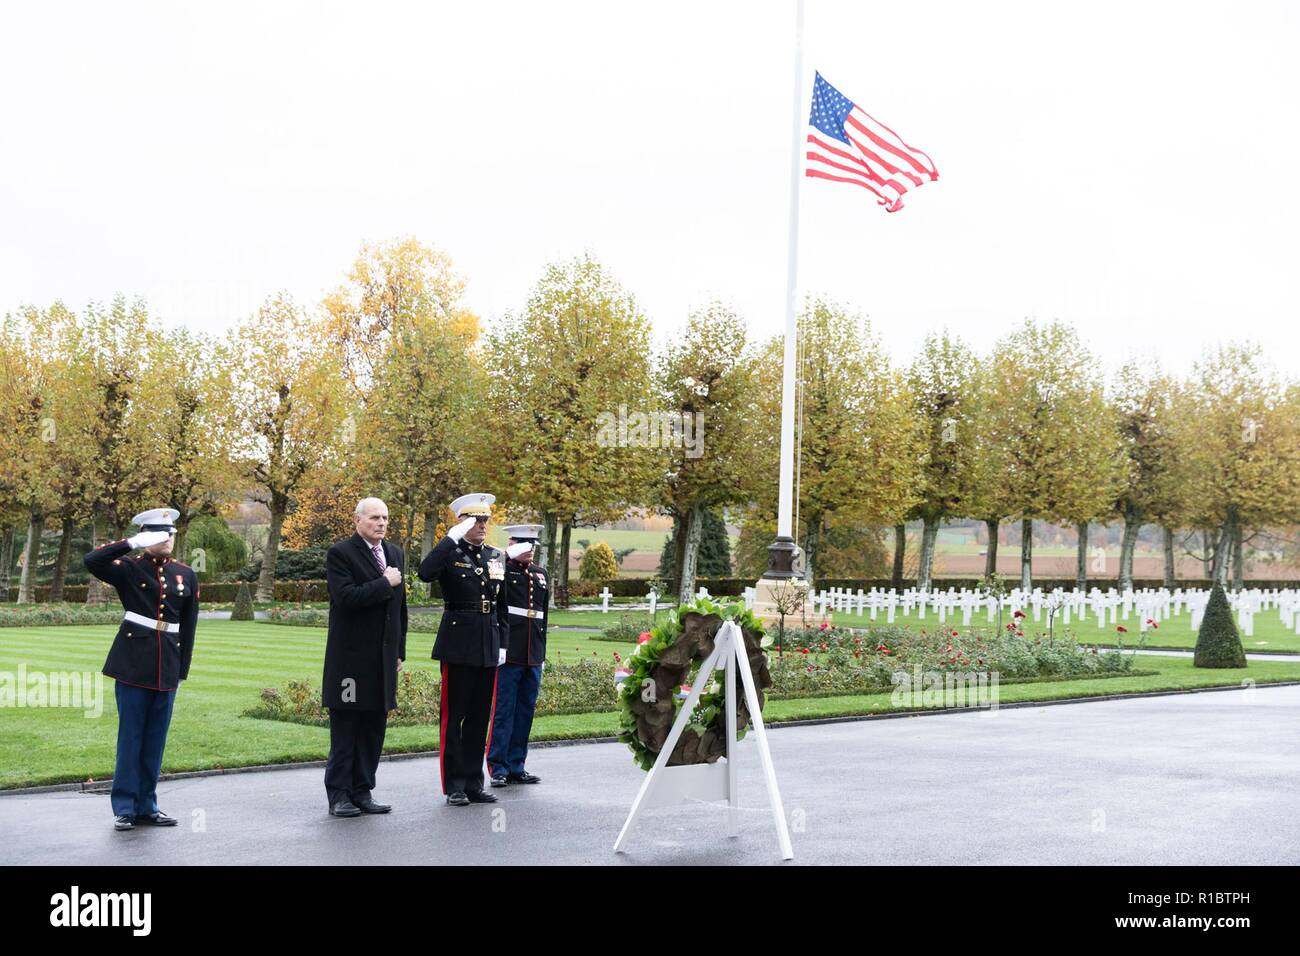 U.S Joint Chiefs Chairman Gen. Joseph Dunford, center, and White House Chief of Staff John Kelly, left, salute during a ceremony at the Aisne - Marne American Cemetery near the World War One battle ground of Belleau Wood November 10, 2018 in Belleau, France. President Donald Trump was scheduled to attend the ceremony but cancelled due to inclement weather. - Stock Image